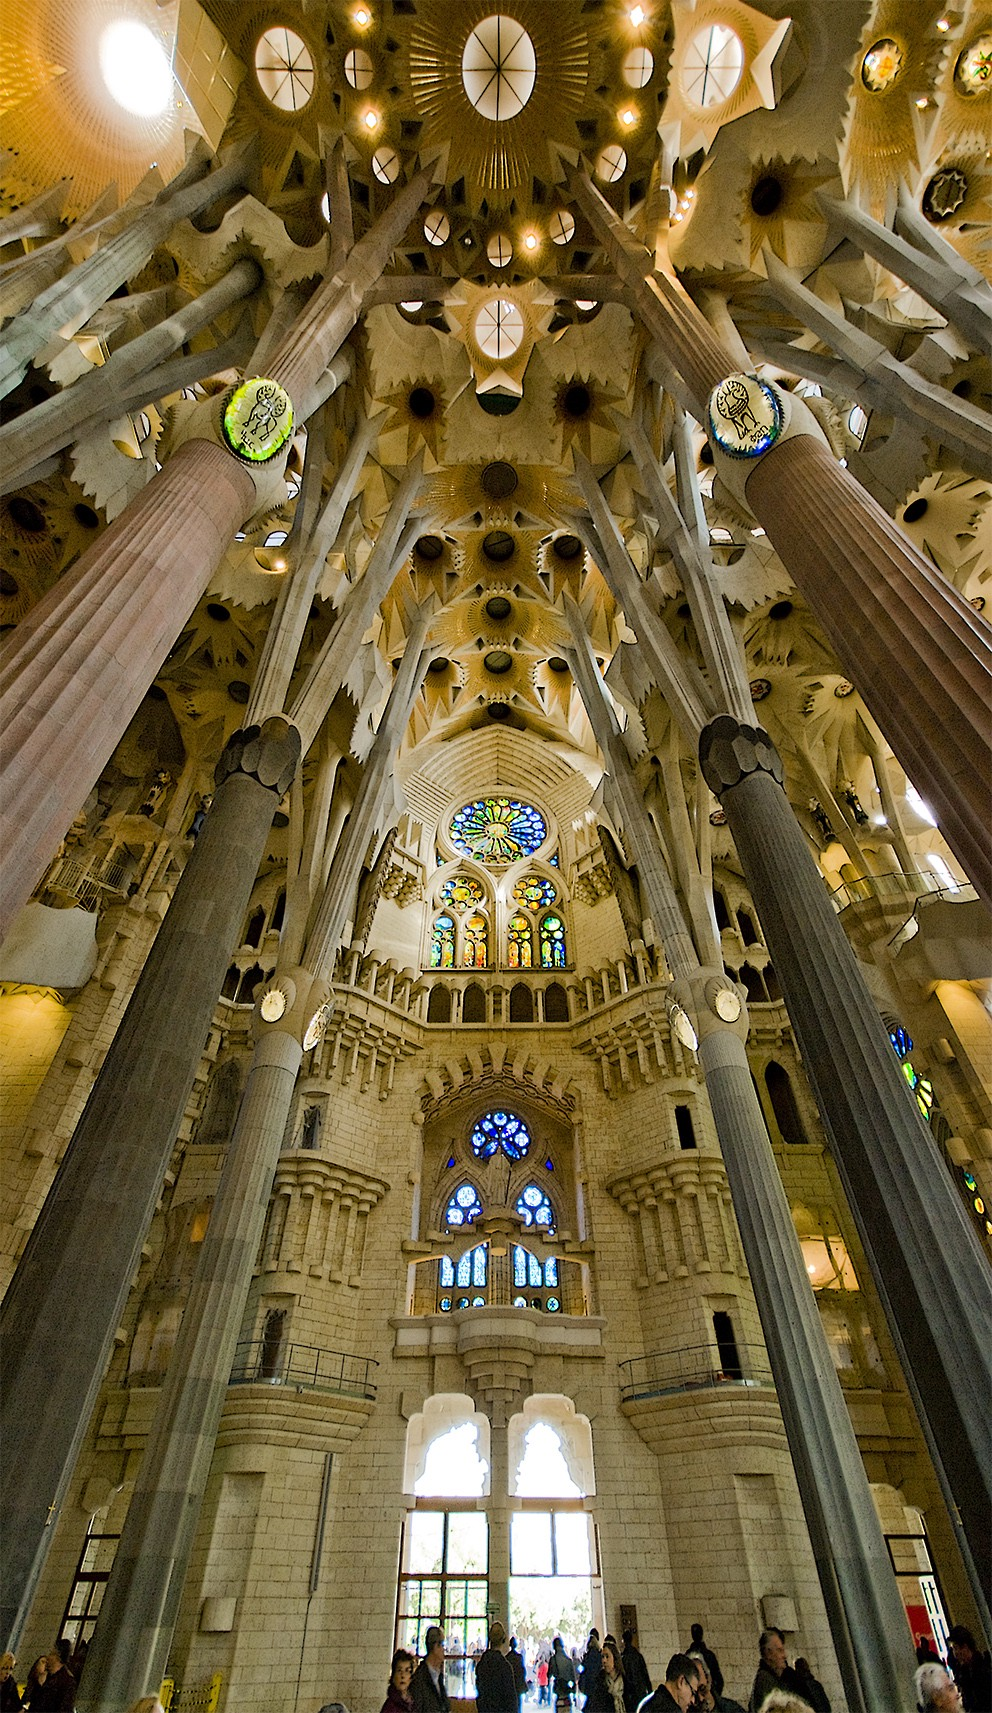 The inside of the Sagrada Família, complete with impressive stone structures and stained glass.